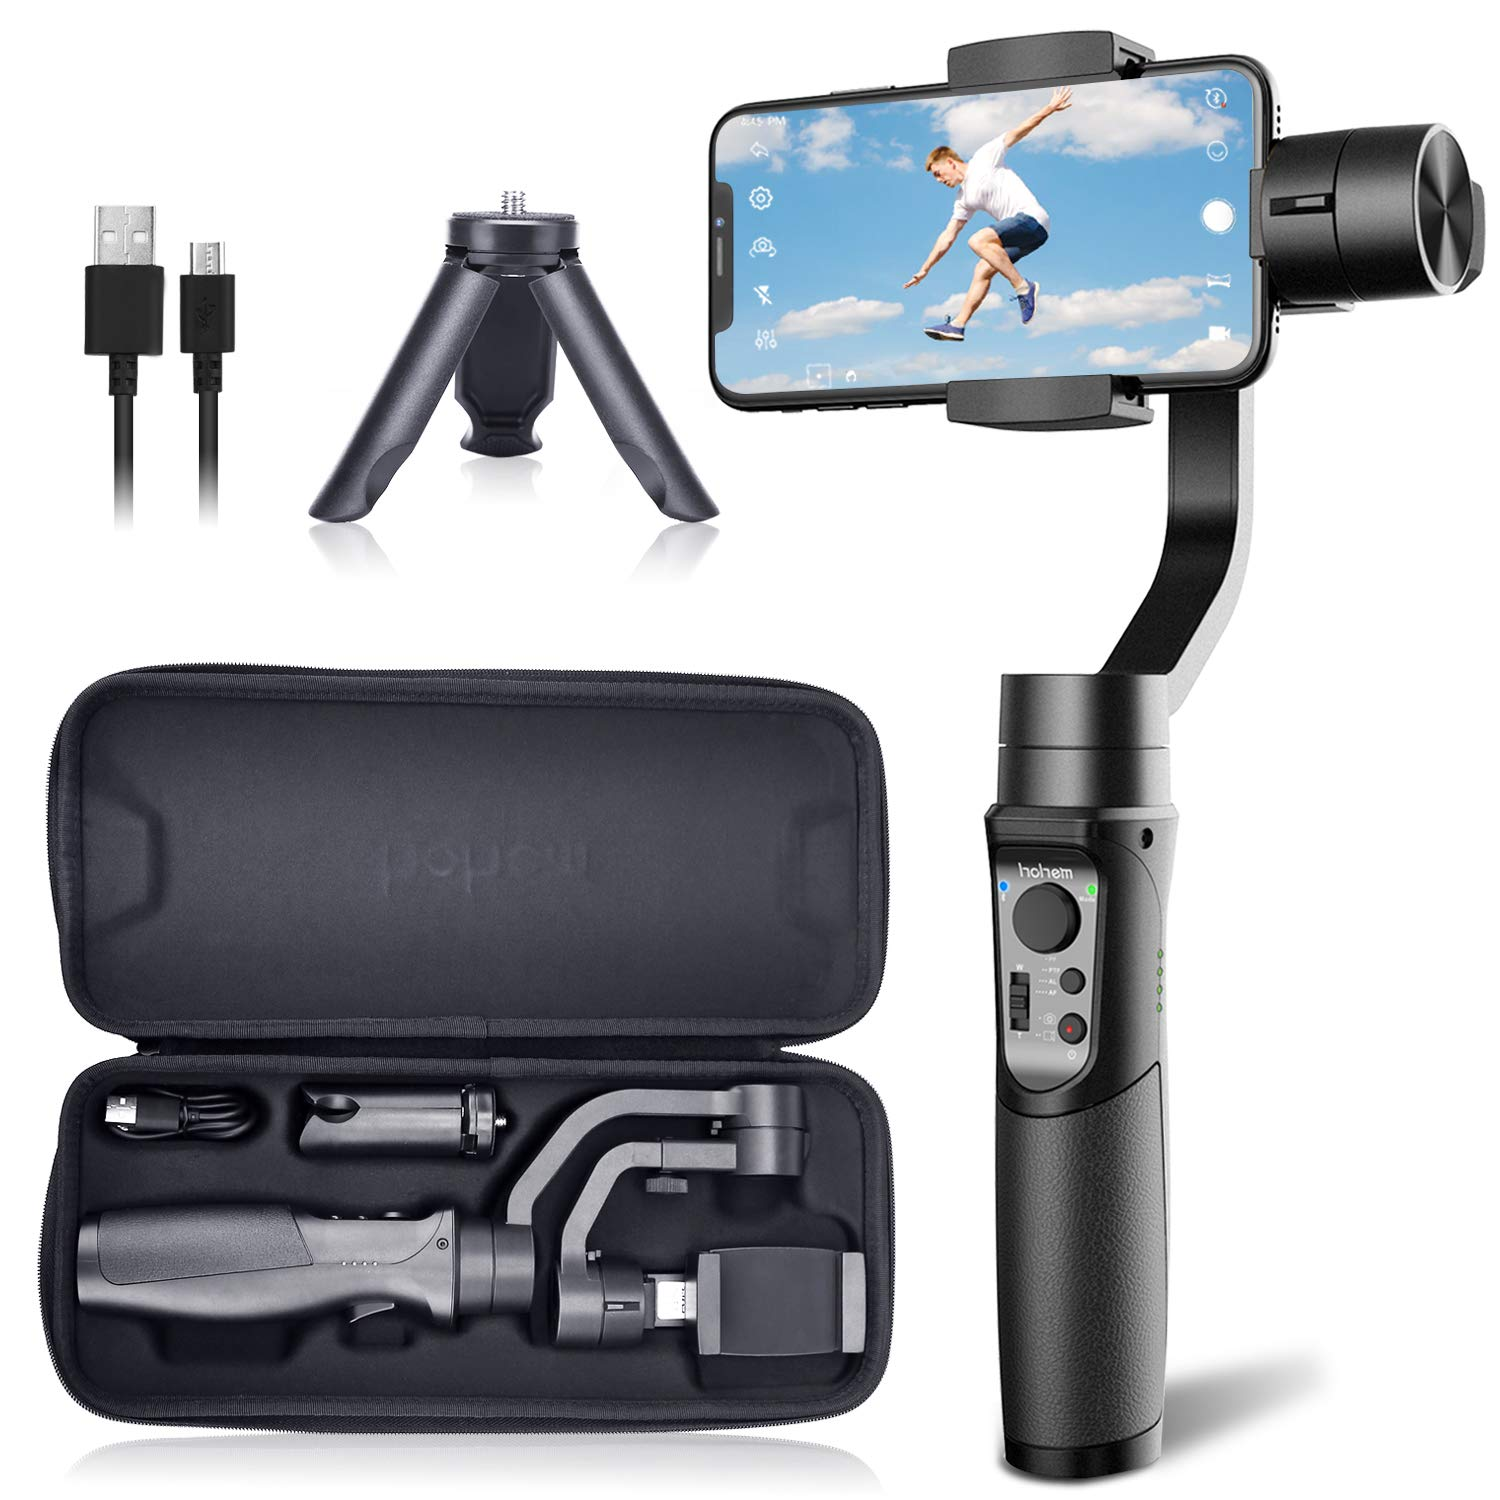 Hohem iSteady Mobile Plus Gimbal Stabilizer 3-Axis Handheld for iPhone 11/11 Pro/Max/XS/XS MAX/XR, for Samsung Galaxy S10/S10 Plus/Note 9/ Plus, Playload 280G, with Face ID, Motion Lapse, for Vlog by hohem